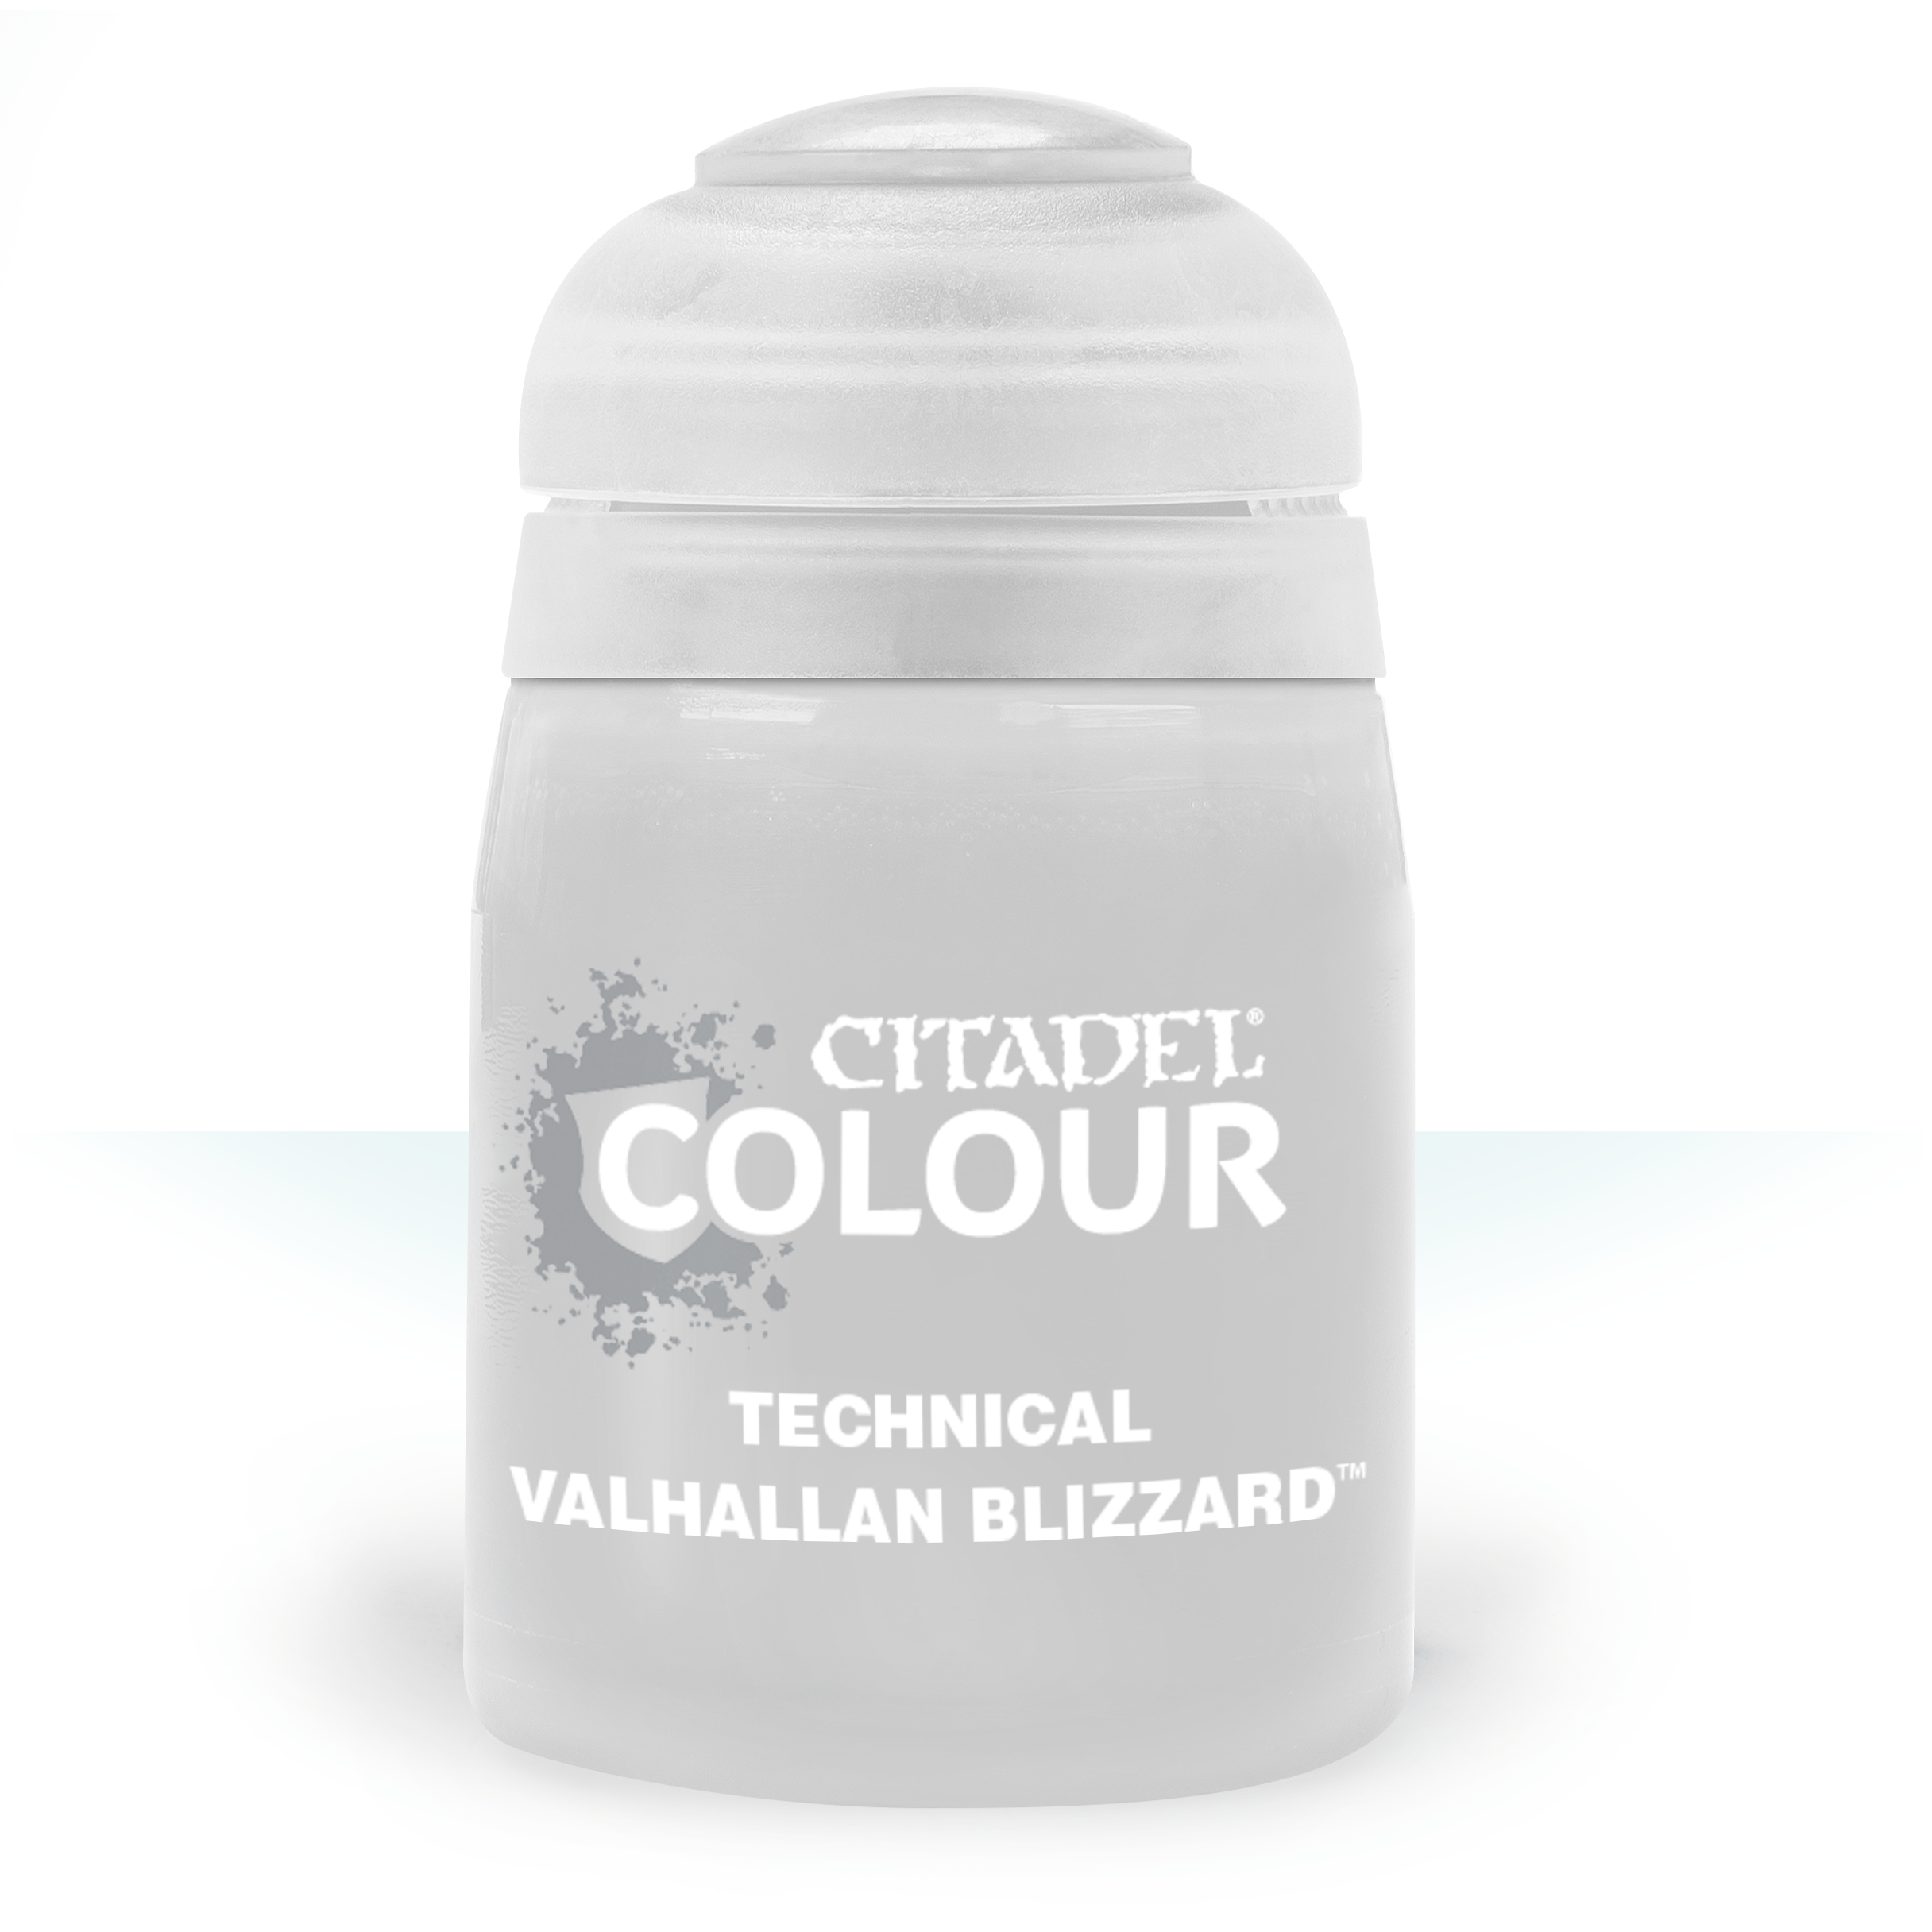 Valhallan Blizzard, Citadel Technical 24ml